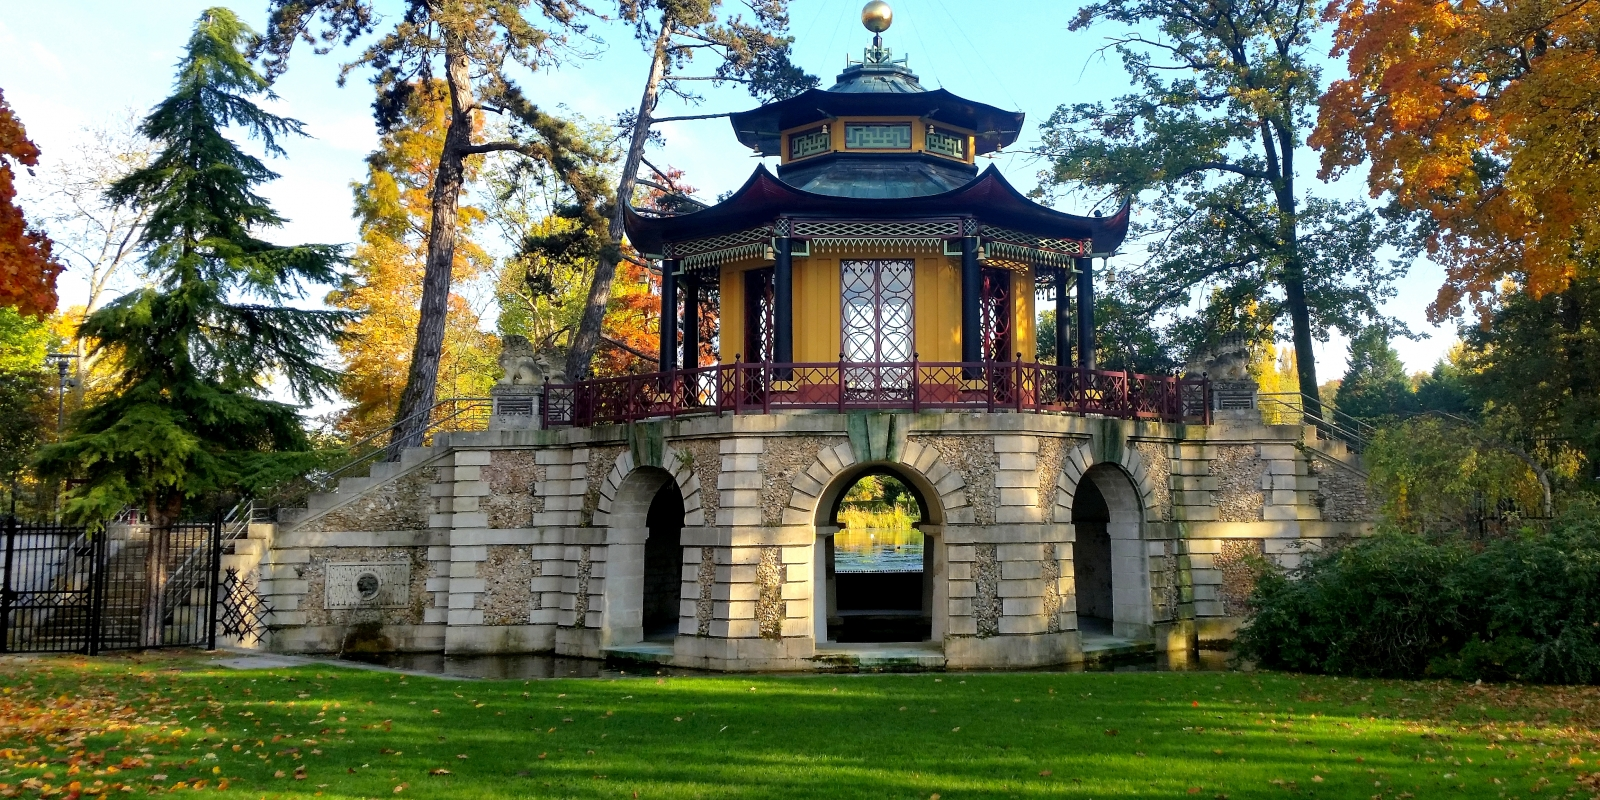 Pavillon Chinois de L'Isle-Adam pris au printemps